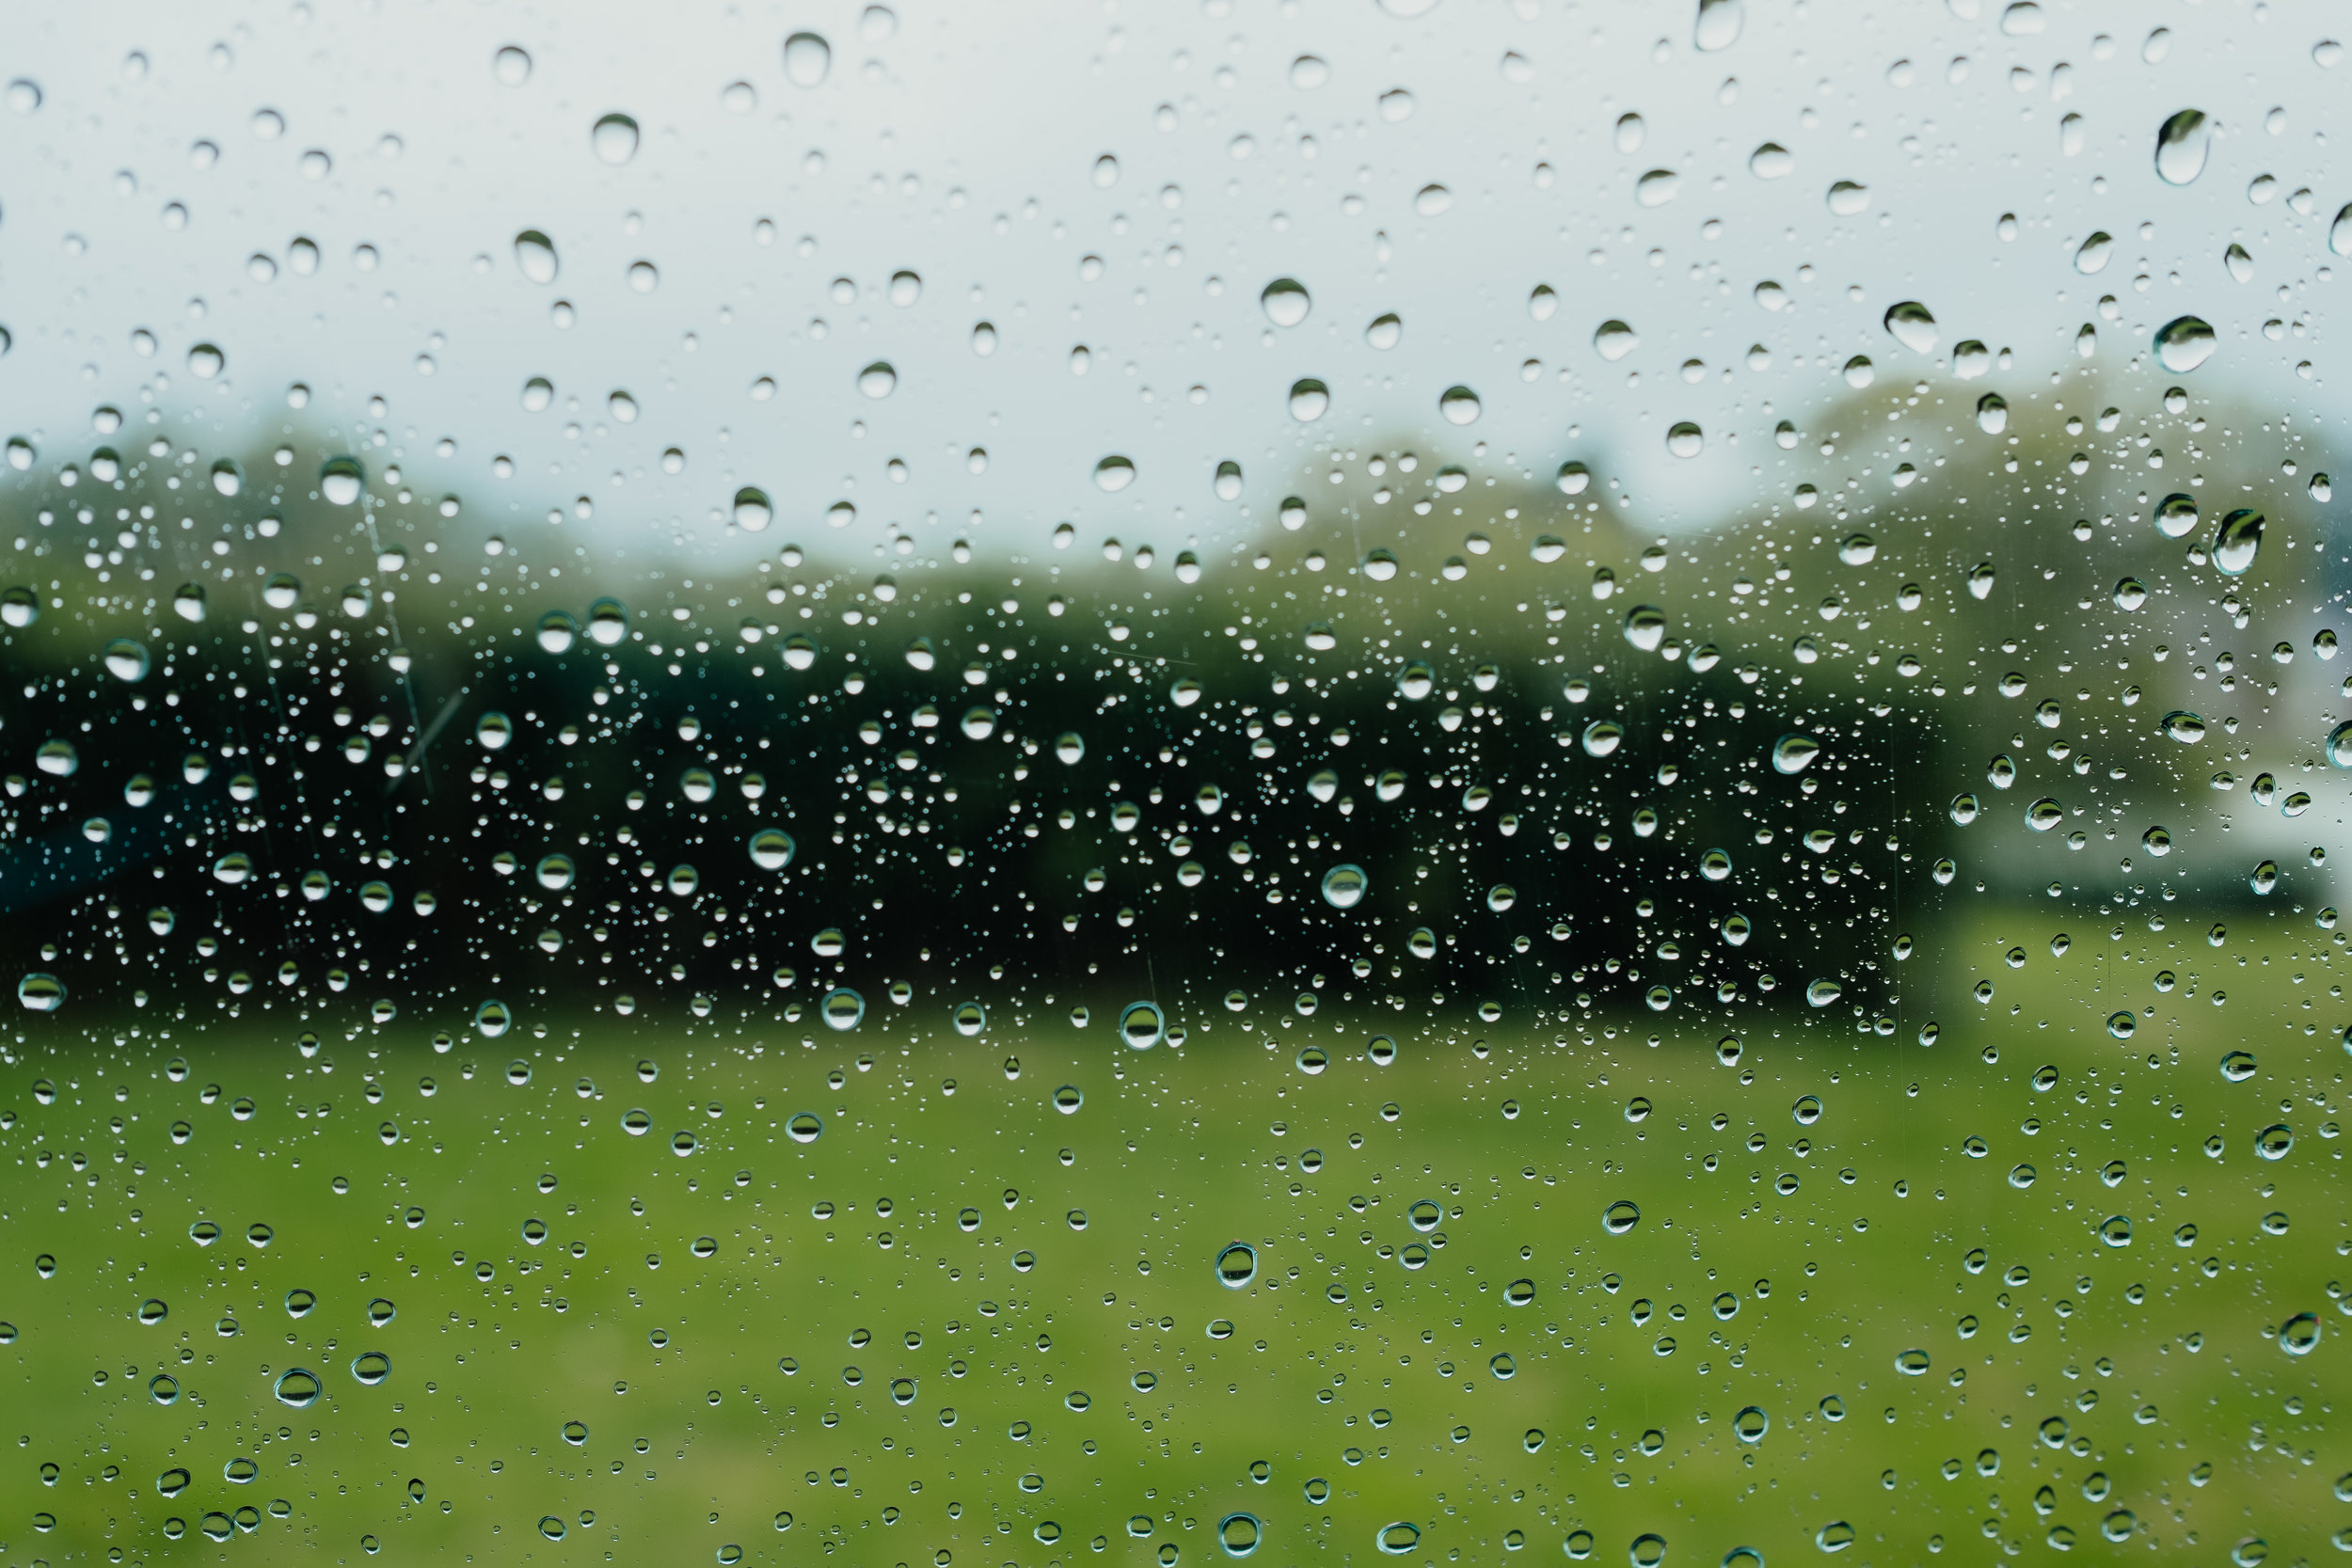 Rainy wedding in East Sussex | raindrops on car window